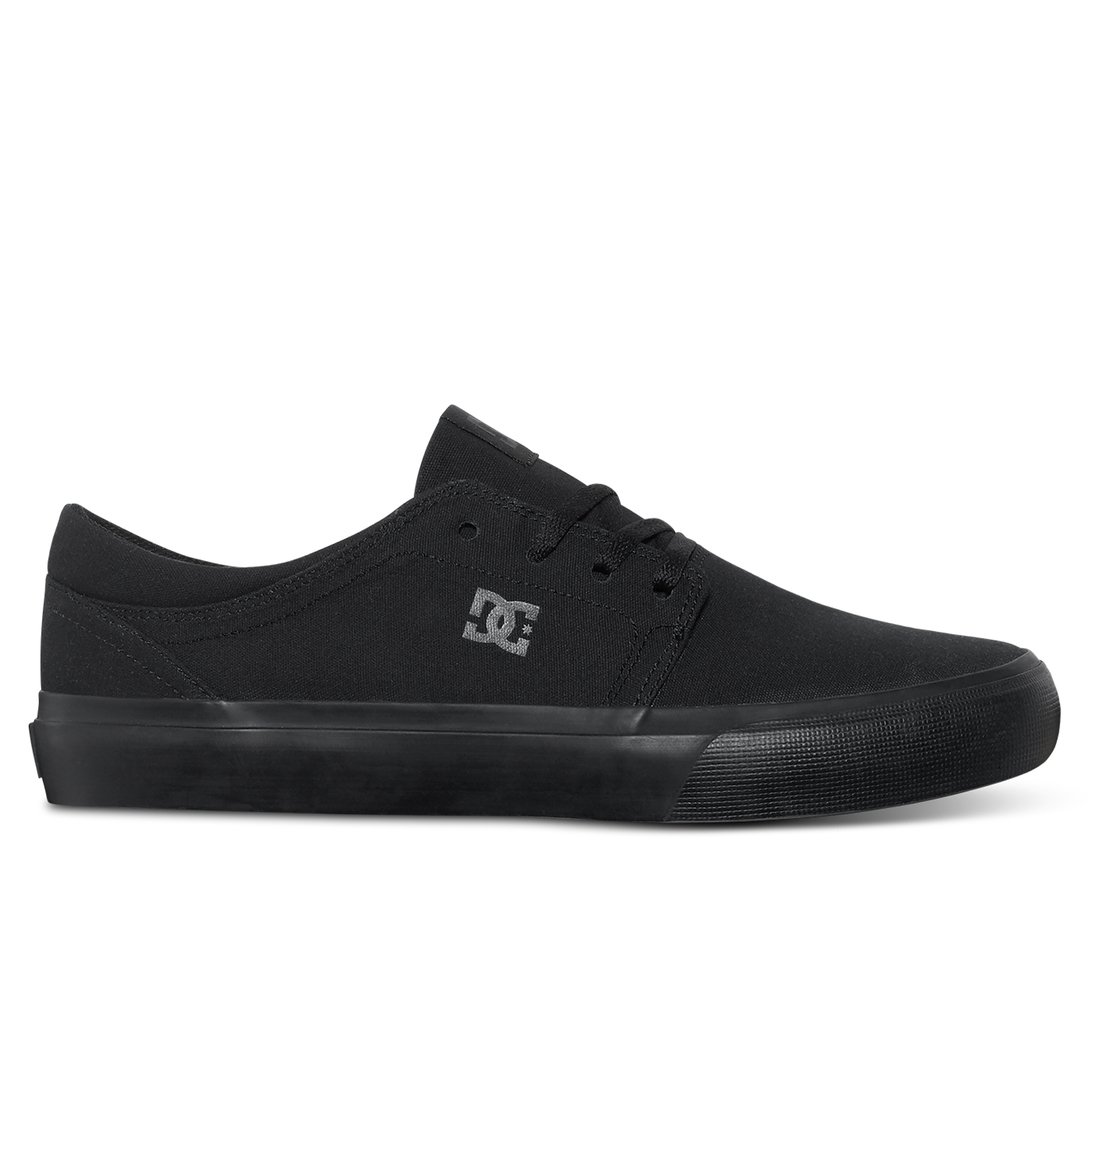 Zapatos azules DC Shoes Trase infantiles